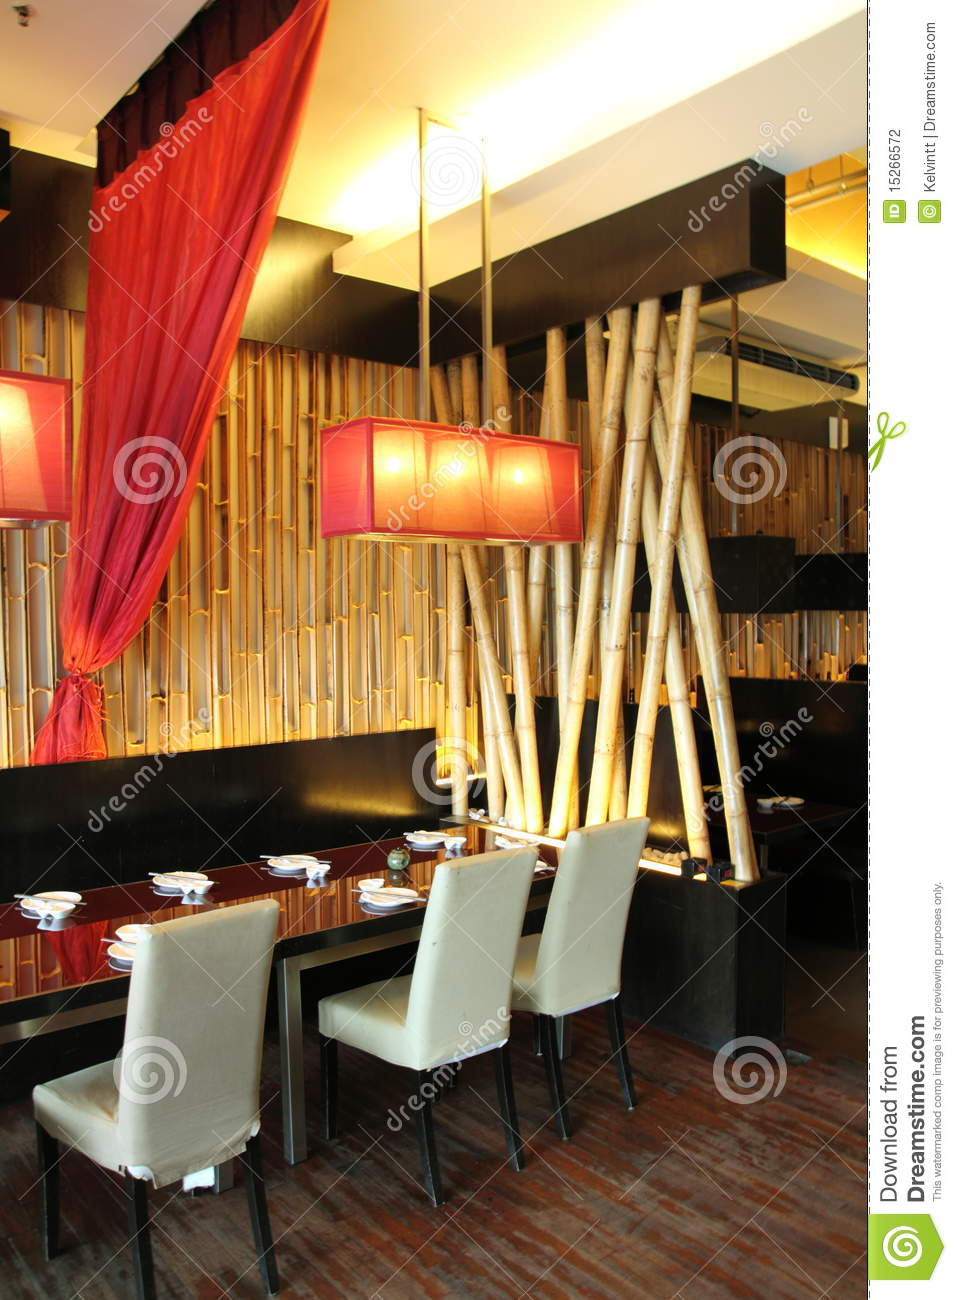 restaurant interior design stock photography - image: 15266572